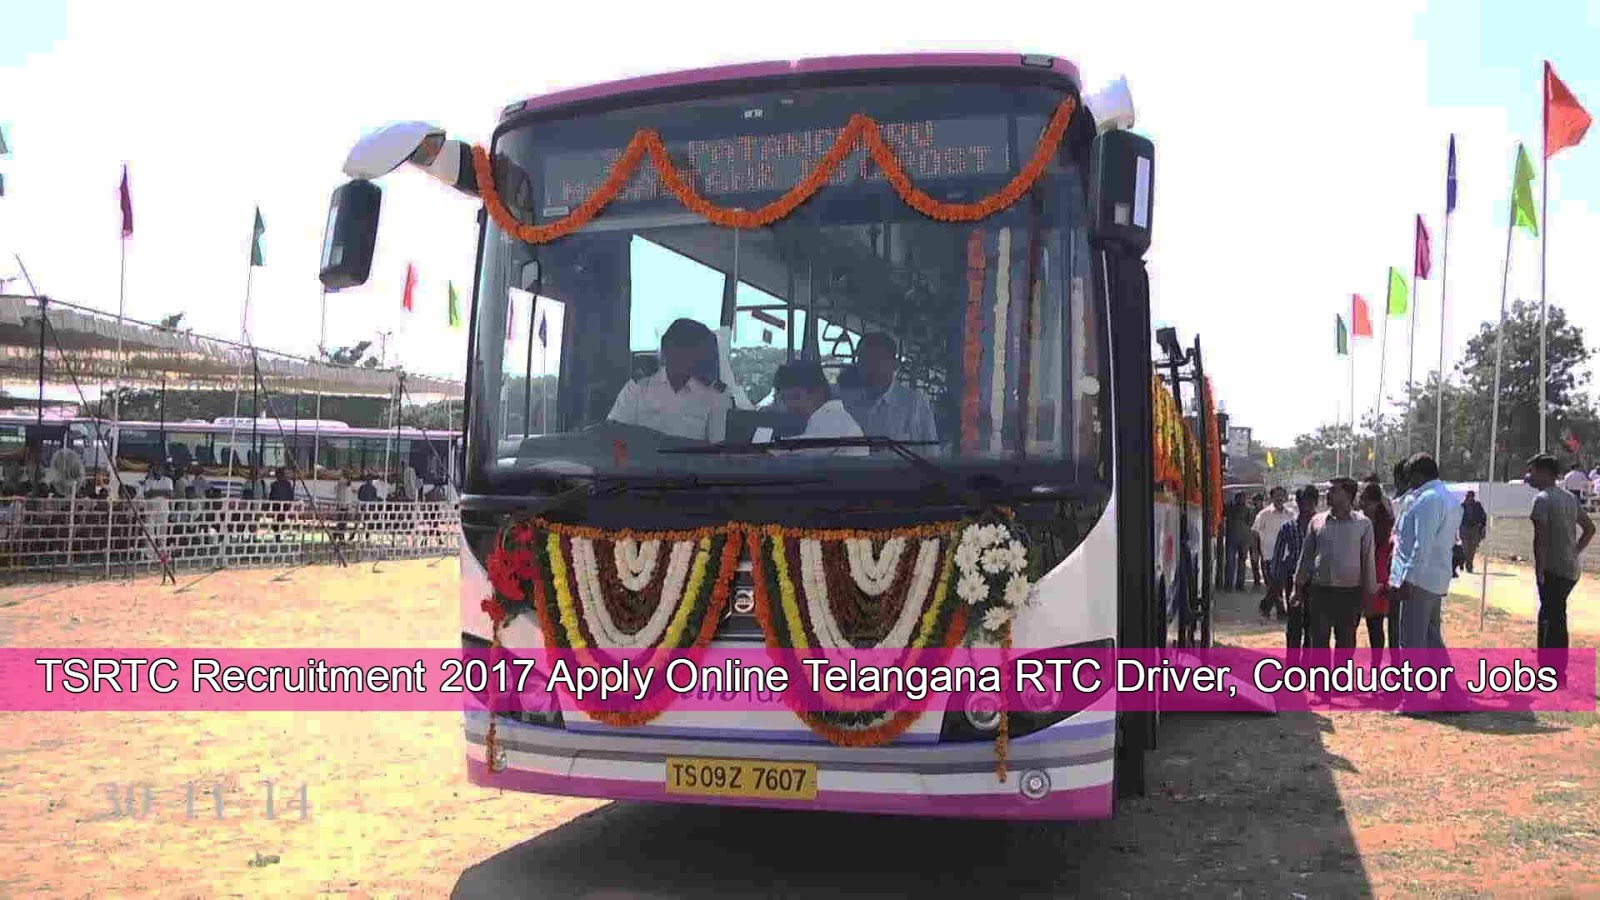 TSRTC Recruitment 2017 Apply Online Telangana RTC Driver, Conductor on andhra marriage, andhra vantalu, andhra nellore, andhra dishes, andhra capital, andhra rayalaseema and map, andhra india, andhra map coordinates, andhra style cabbage curry, andhra state map, andhra cyclone, andhra district map, andhra tourism, andhra temple, andhra food, andhra snacks, andhra telugu, andhra district populations,